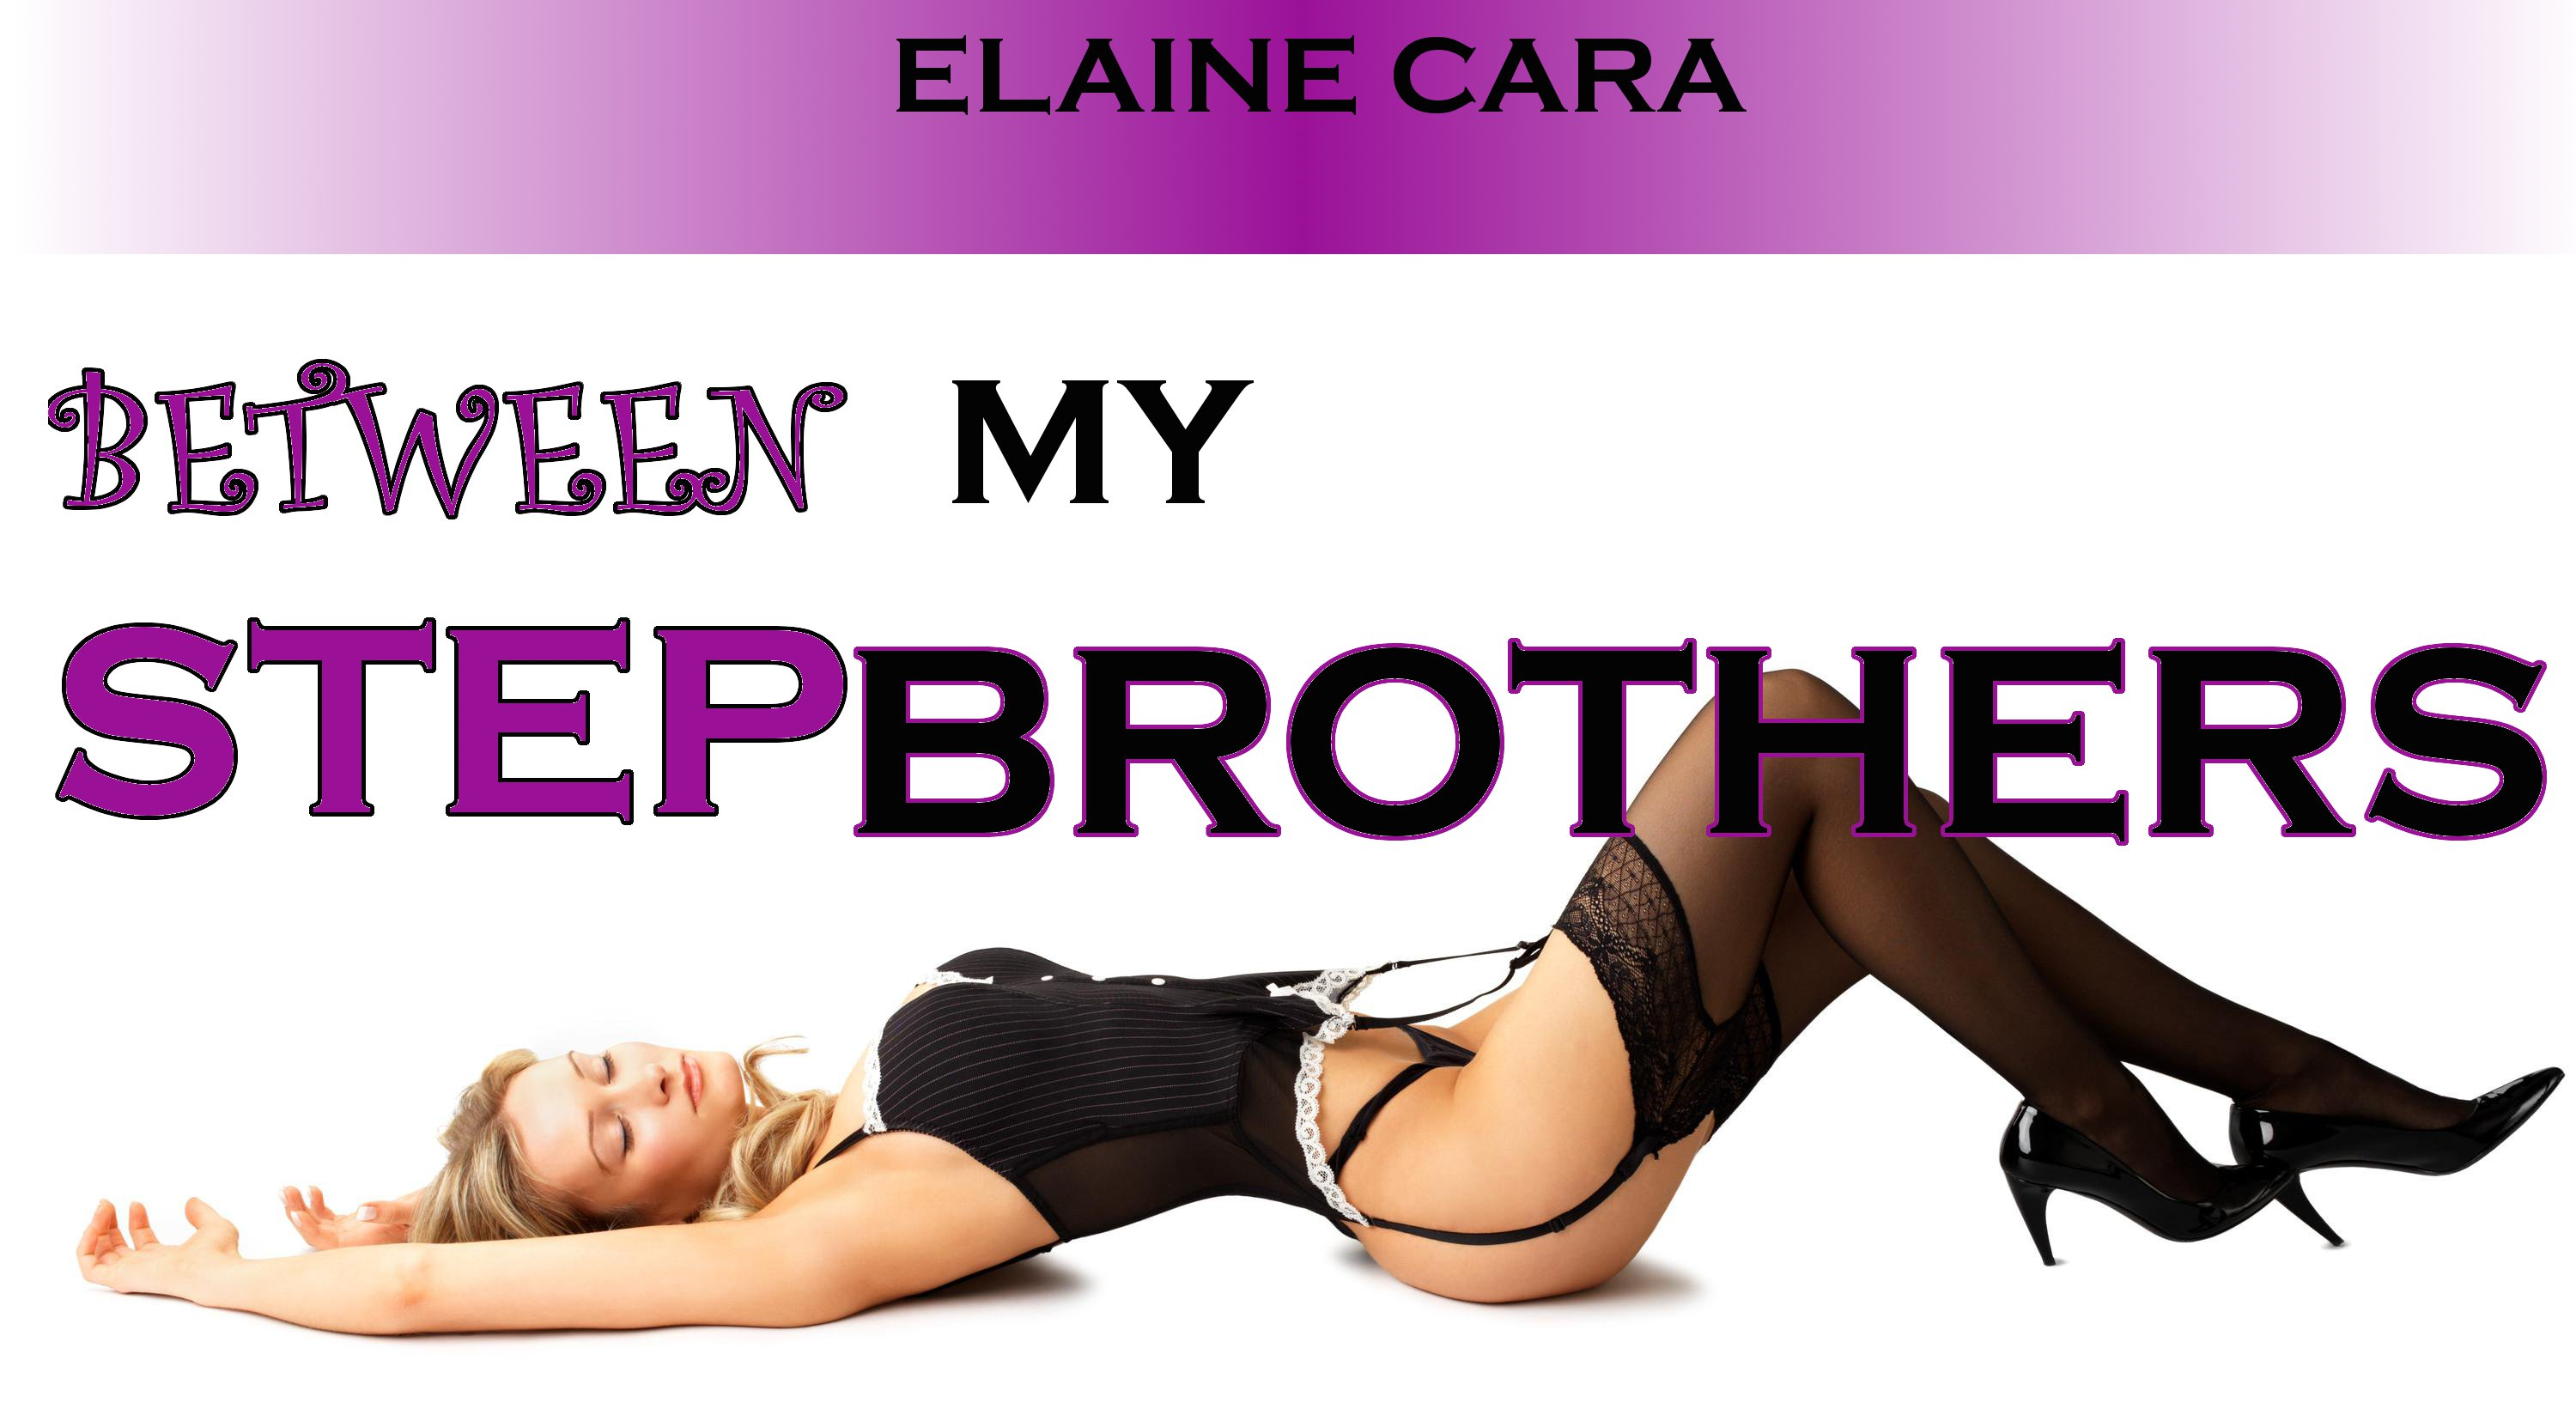 Between My Step Brothers (Naughty Step Stories) By: Elaine Cara